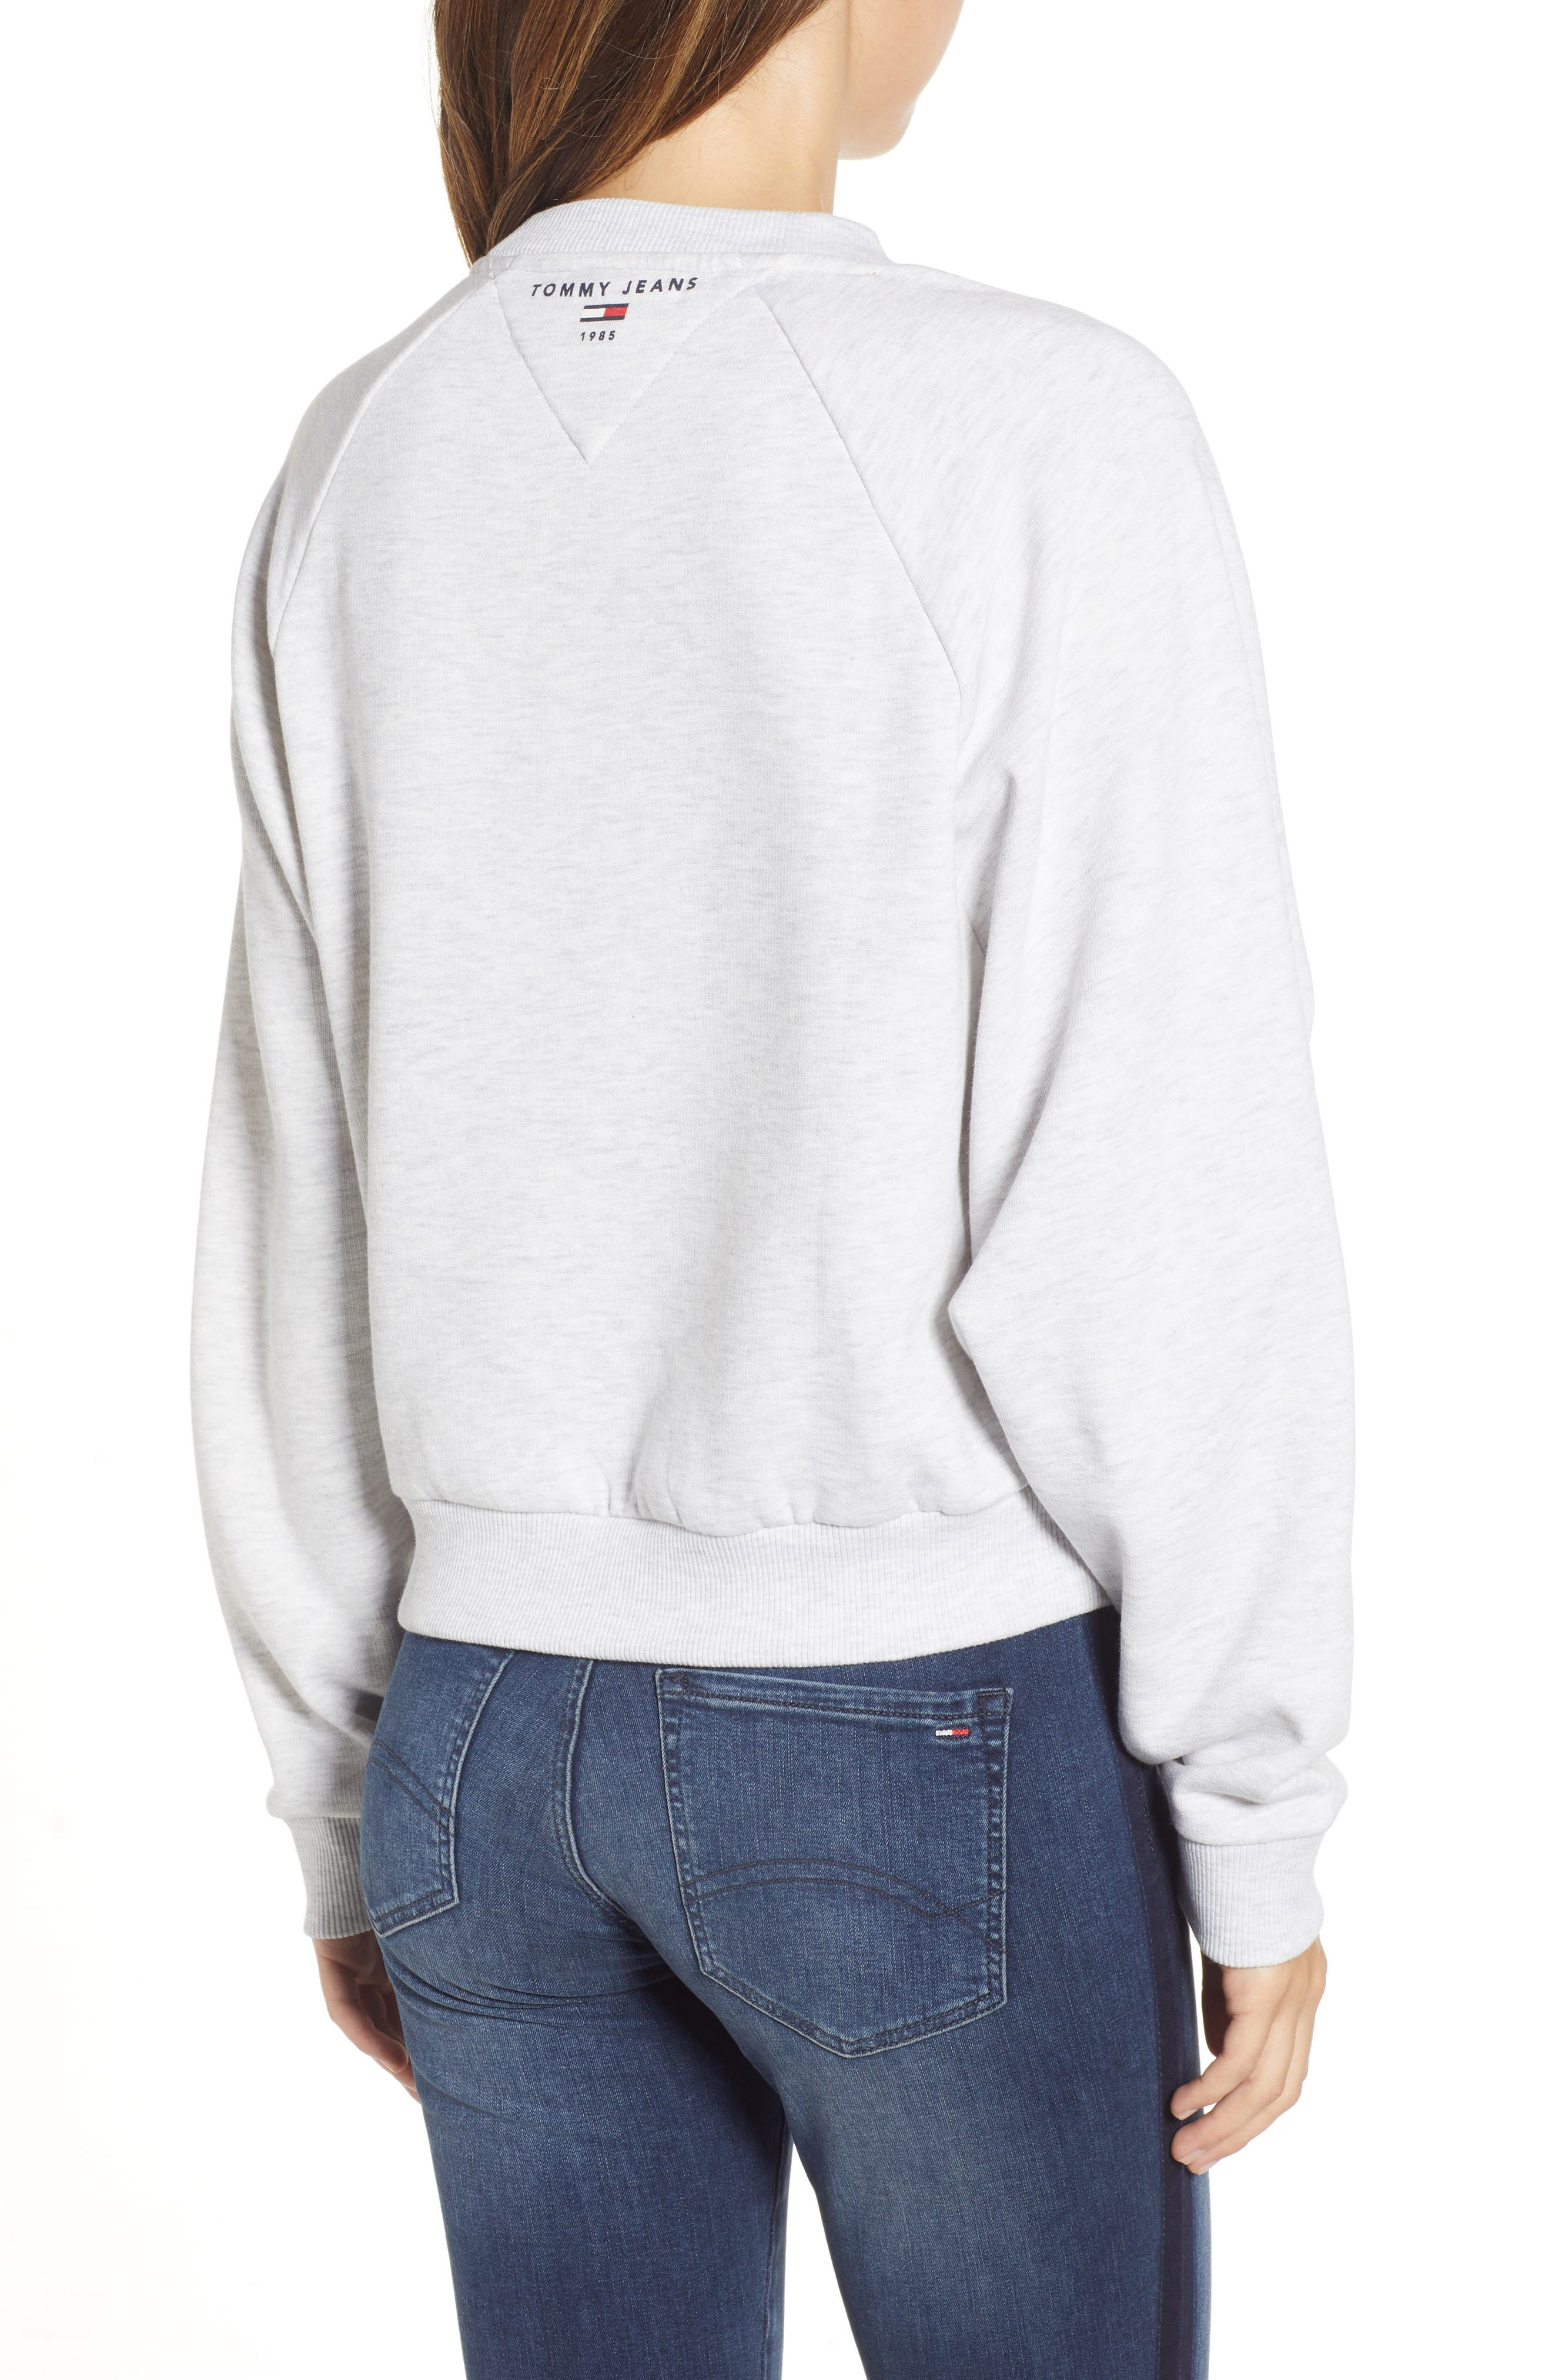 TJW Raglan Sweatshirt,                             Alternate thumbnail 2, color,                             PALE GREY HEATHER